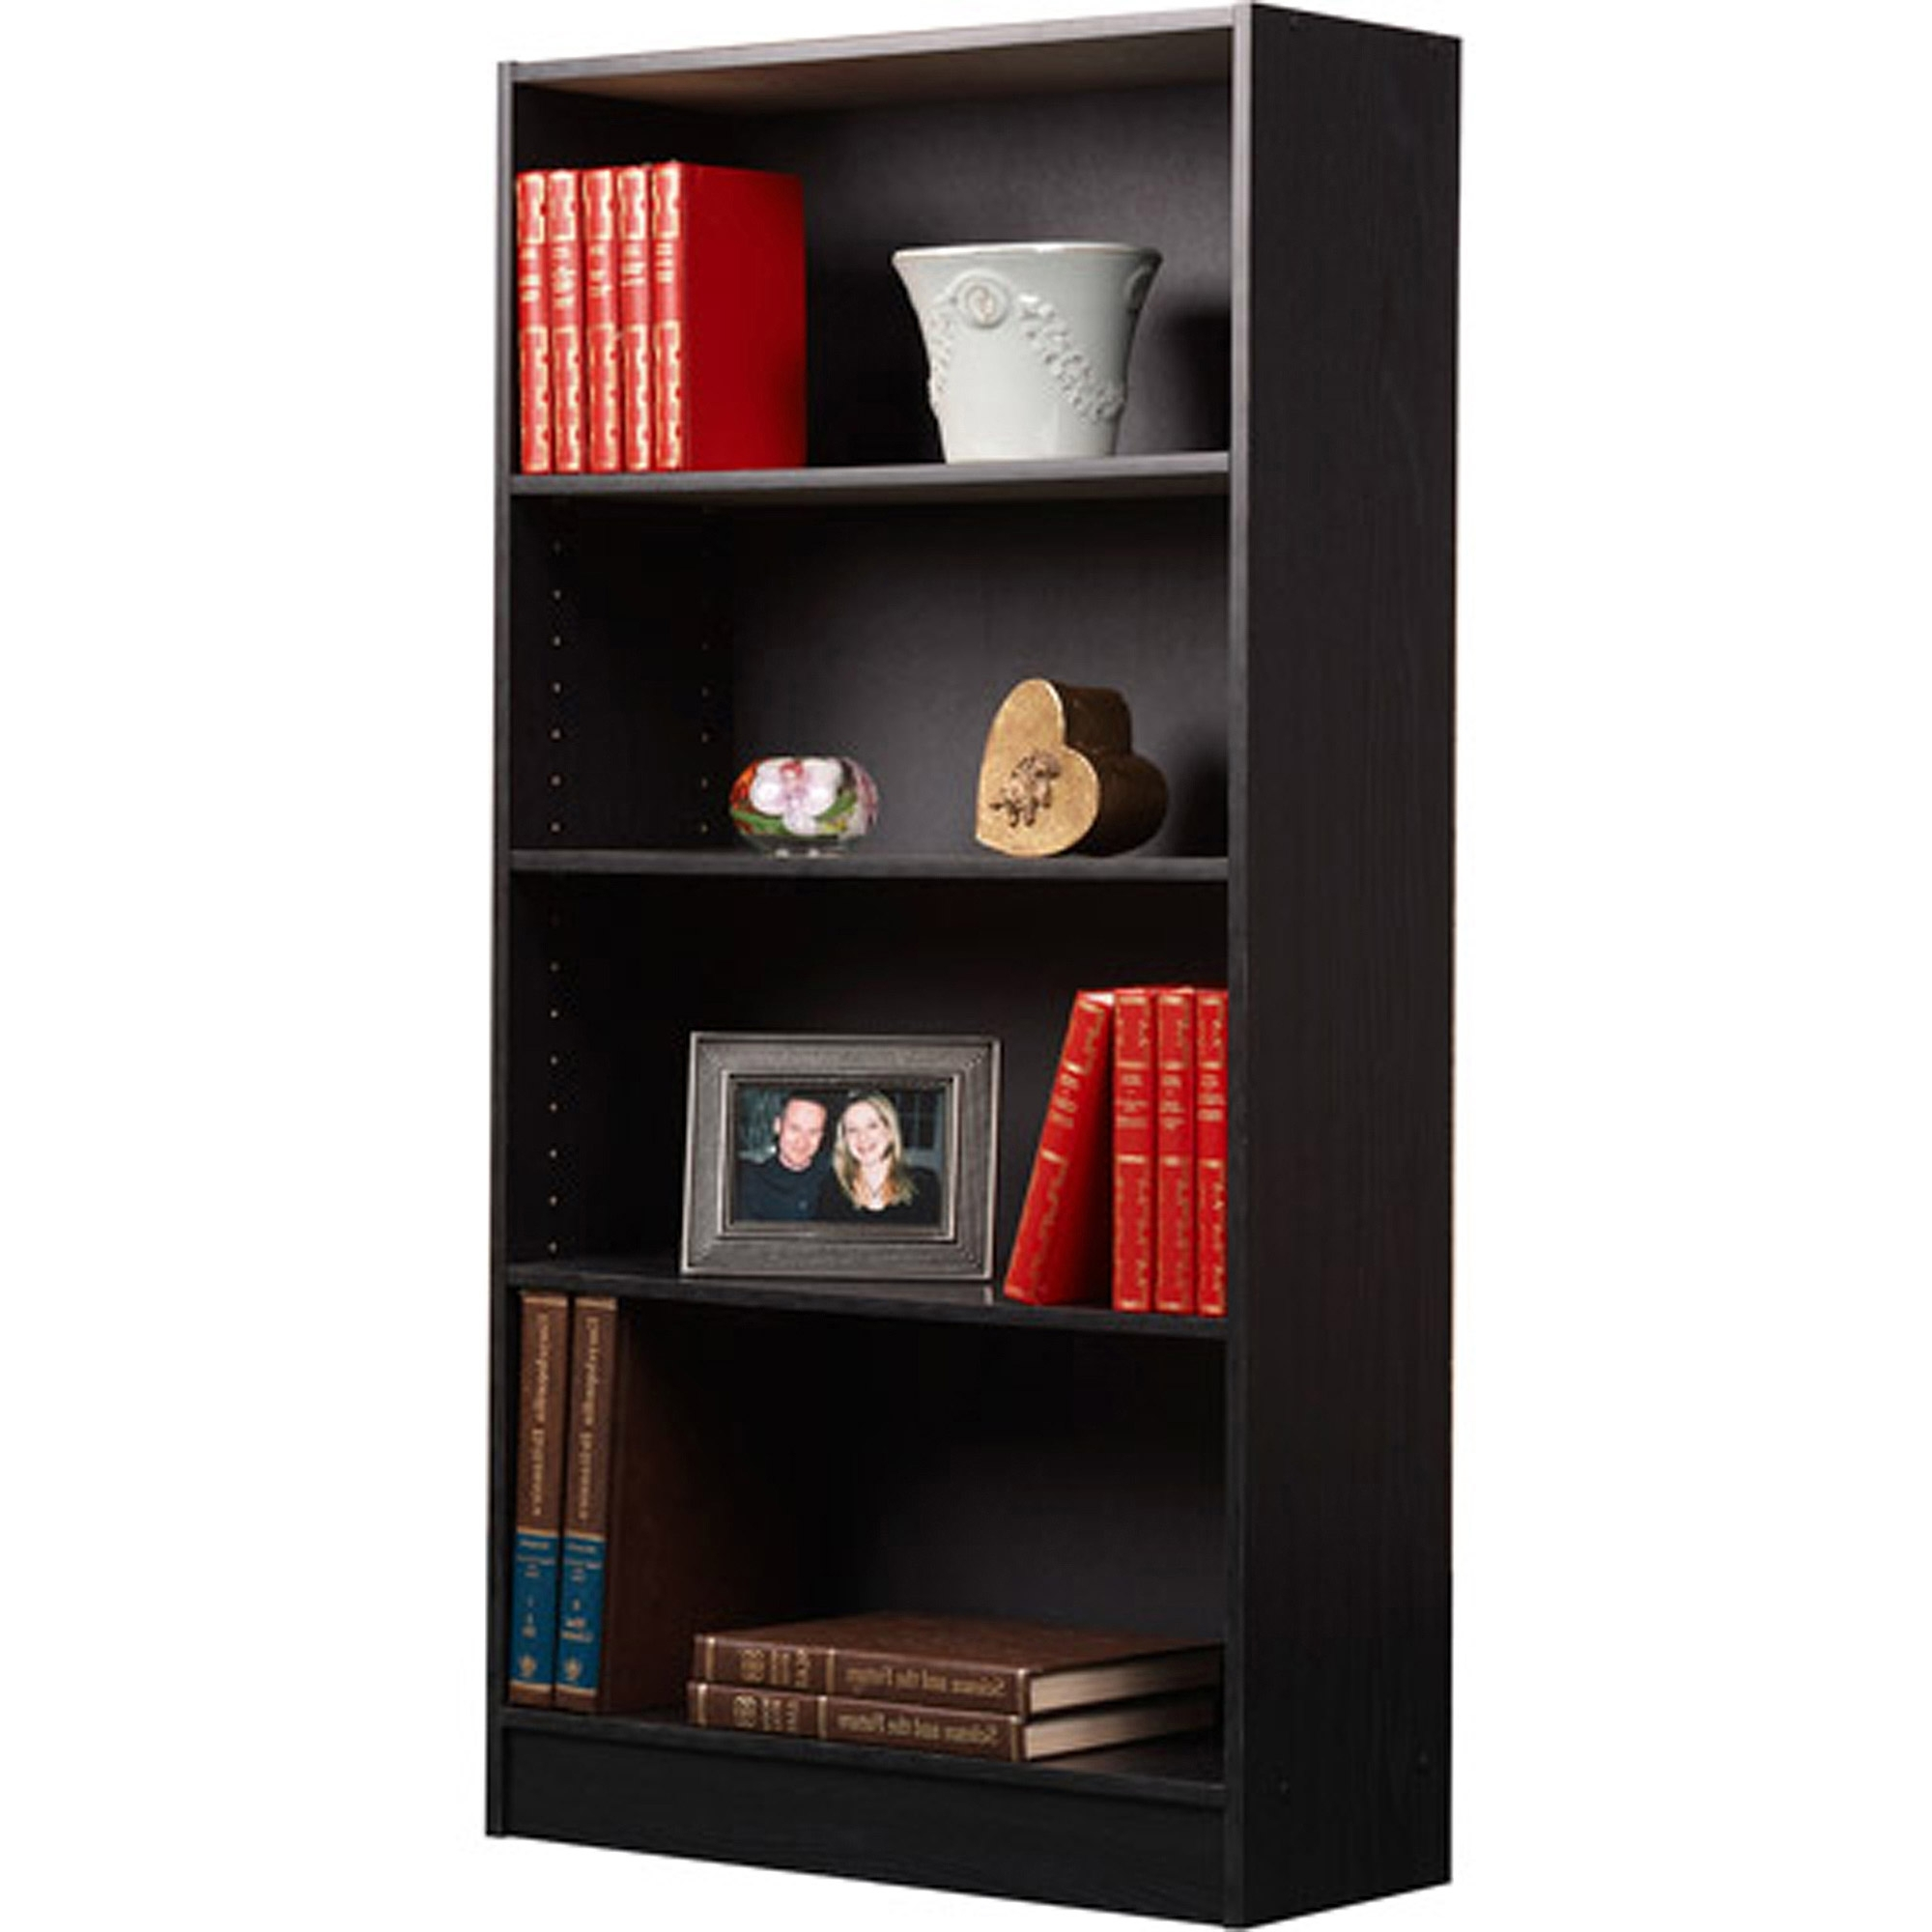 Most Recently Released Walmart Bookcases Regarding Orion 4 Shelf Bookcases, Set Of 2 – Walmart (View 6 of 15)